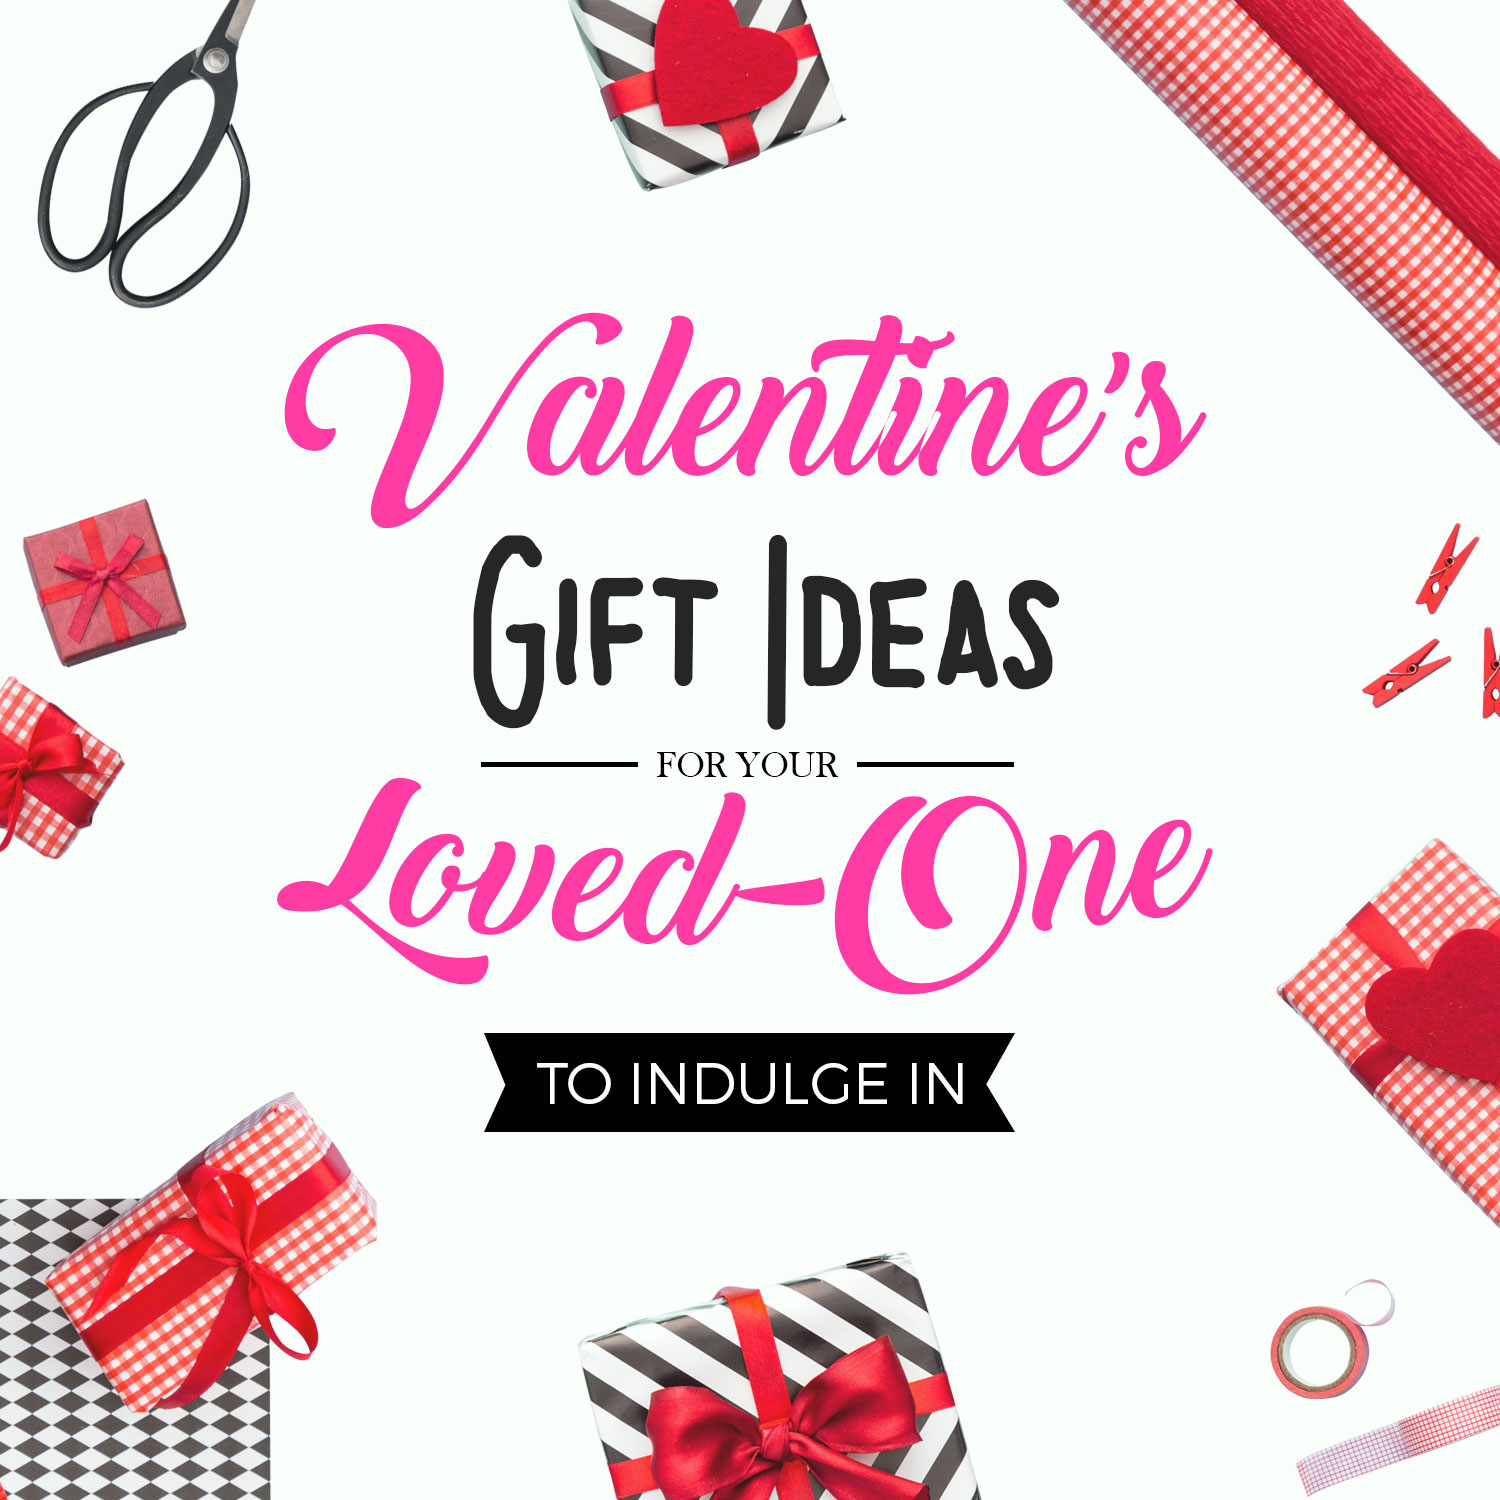 10 Valentine's Gift Ideas for Your Loved One to Indulge In